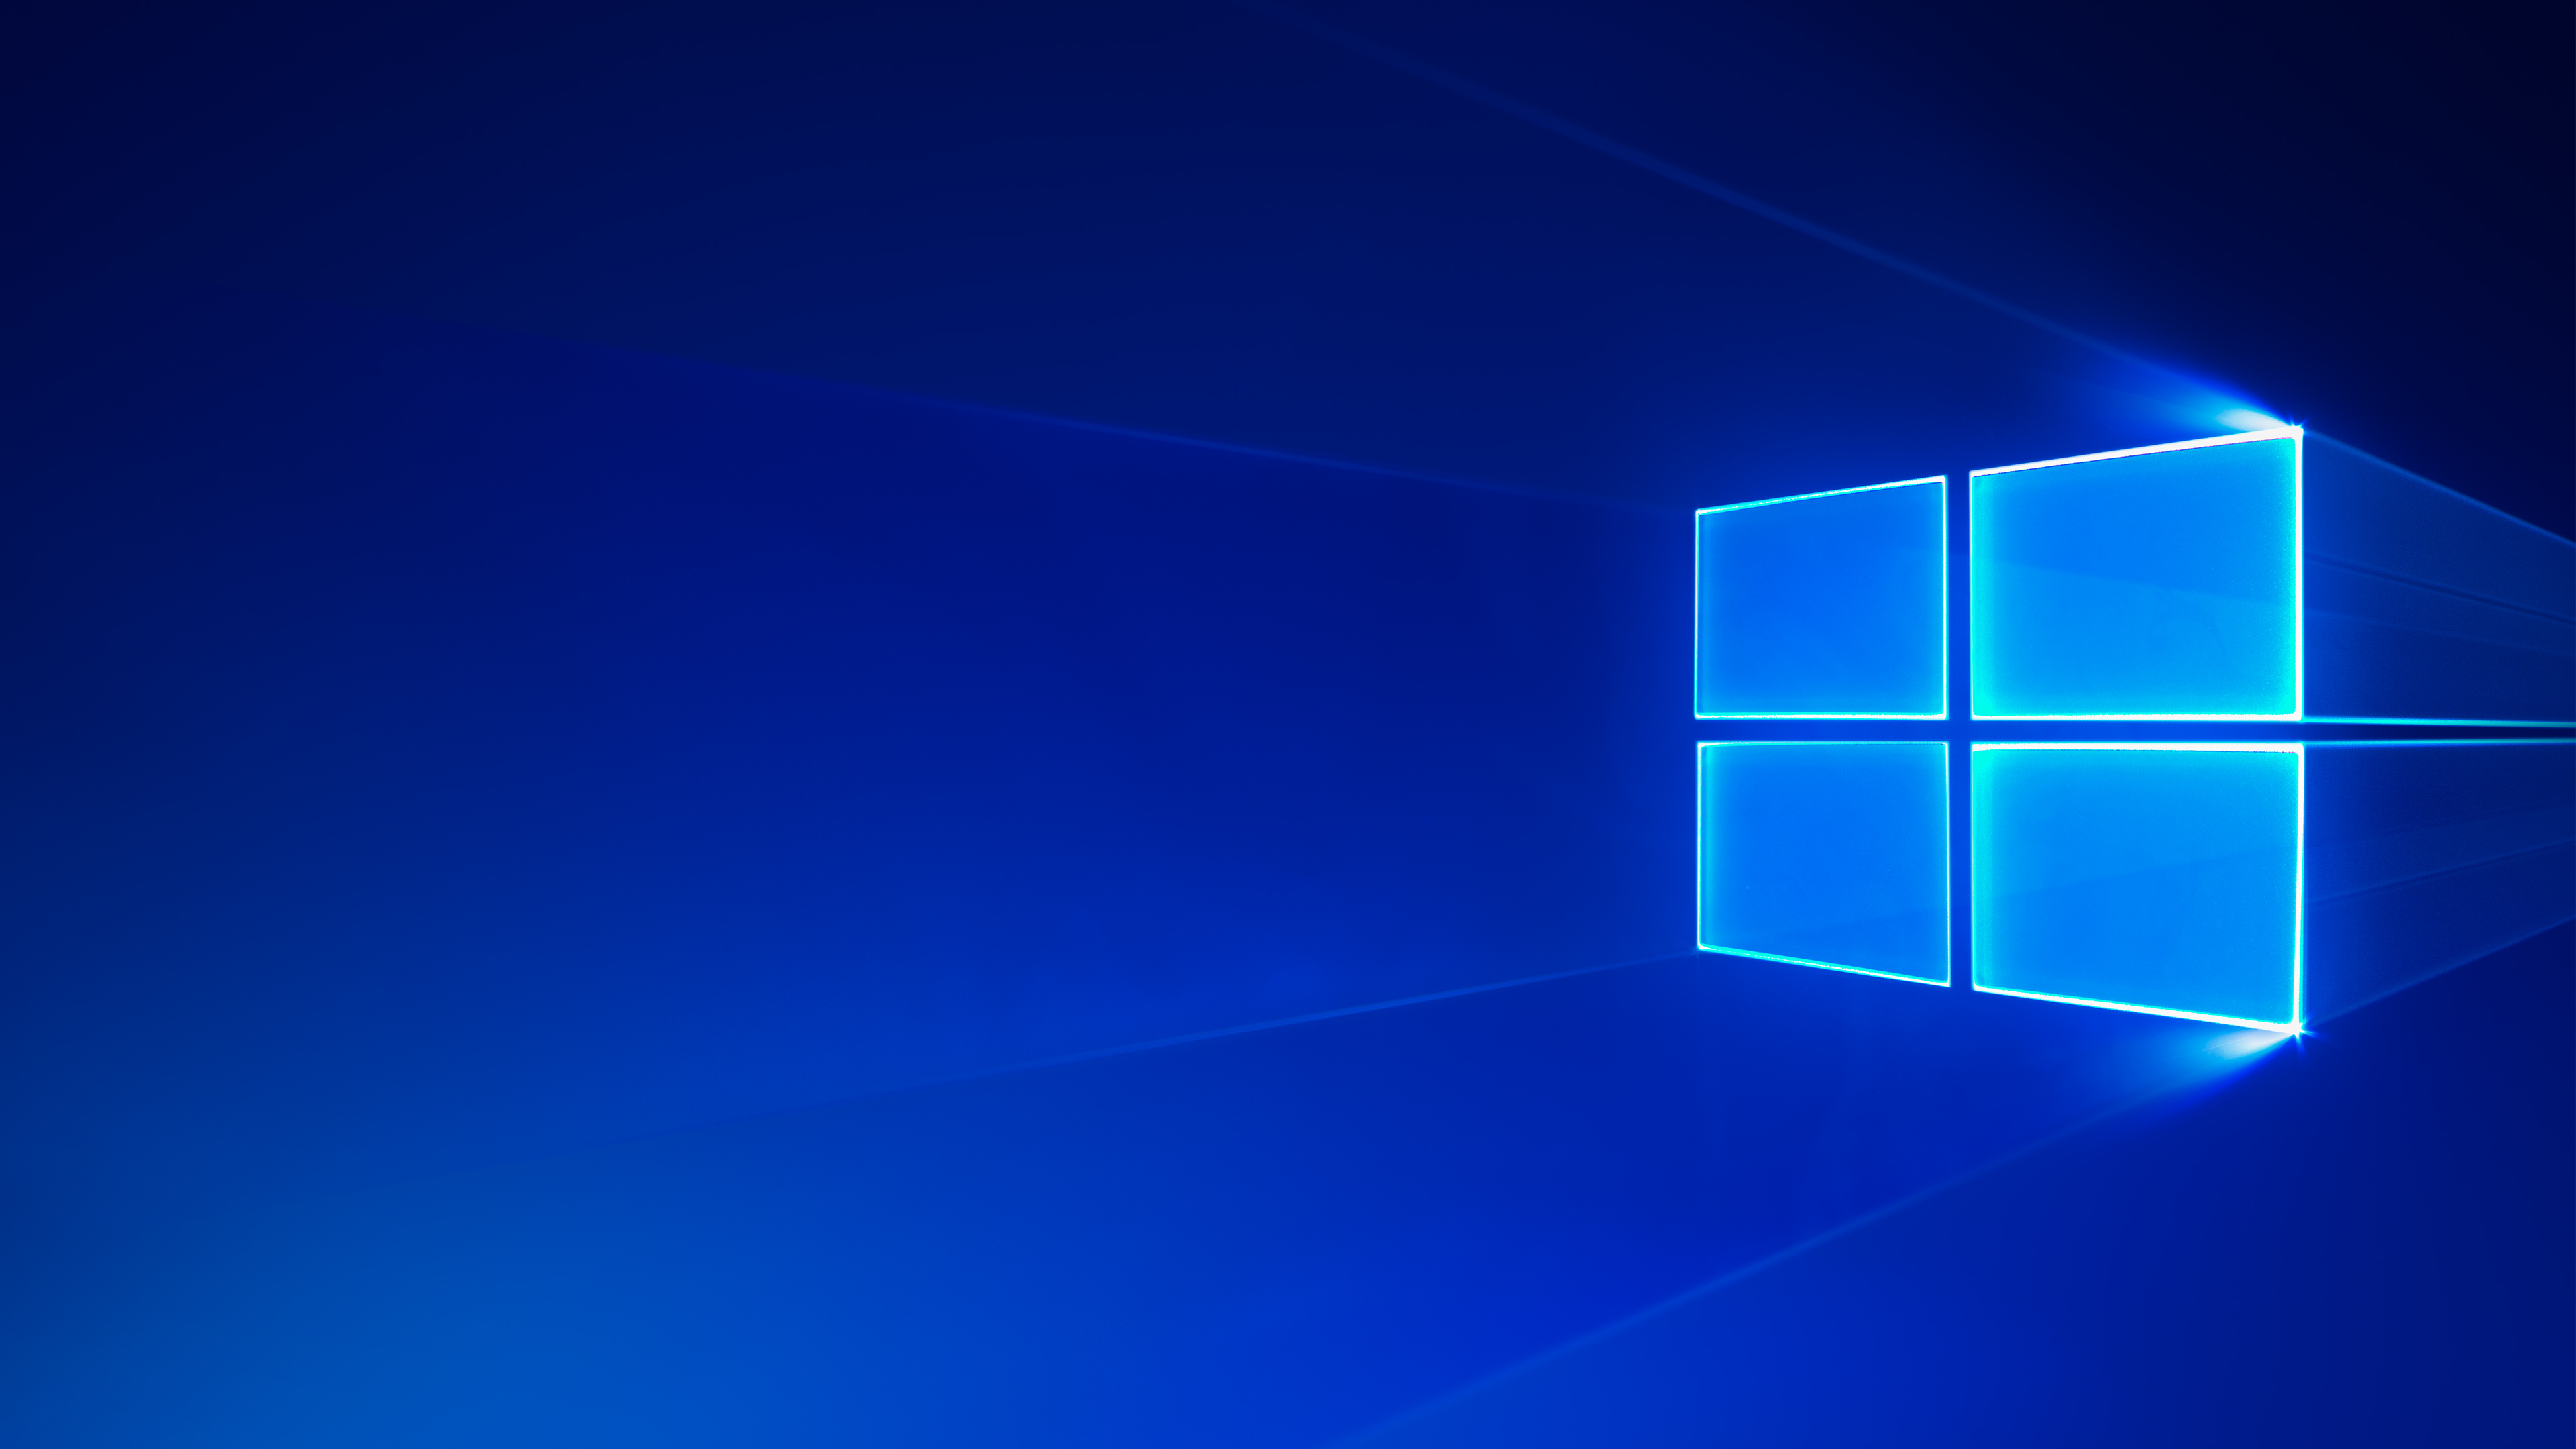 enlarge the windows 10 s default wallpaper is a rather attractive simplified version of the windows 10 default wallpaper